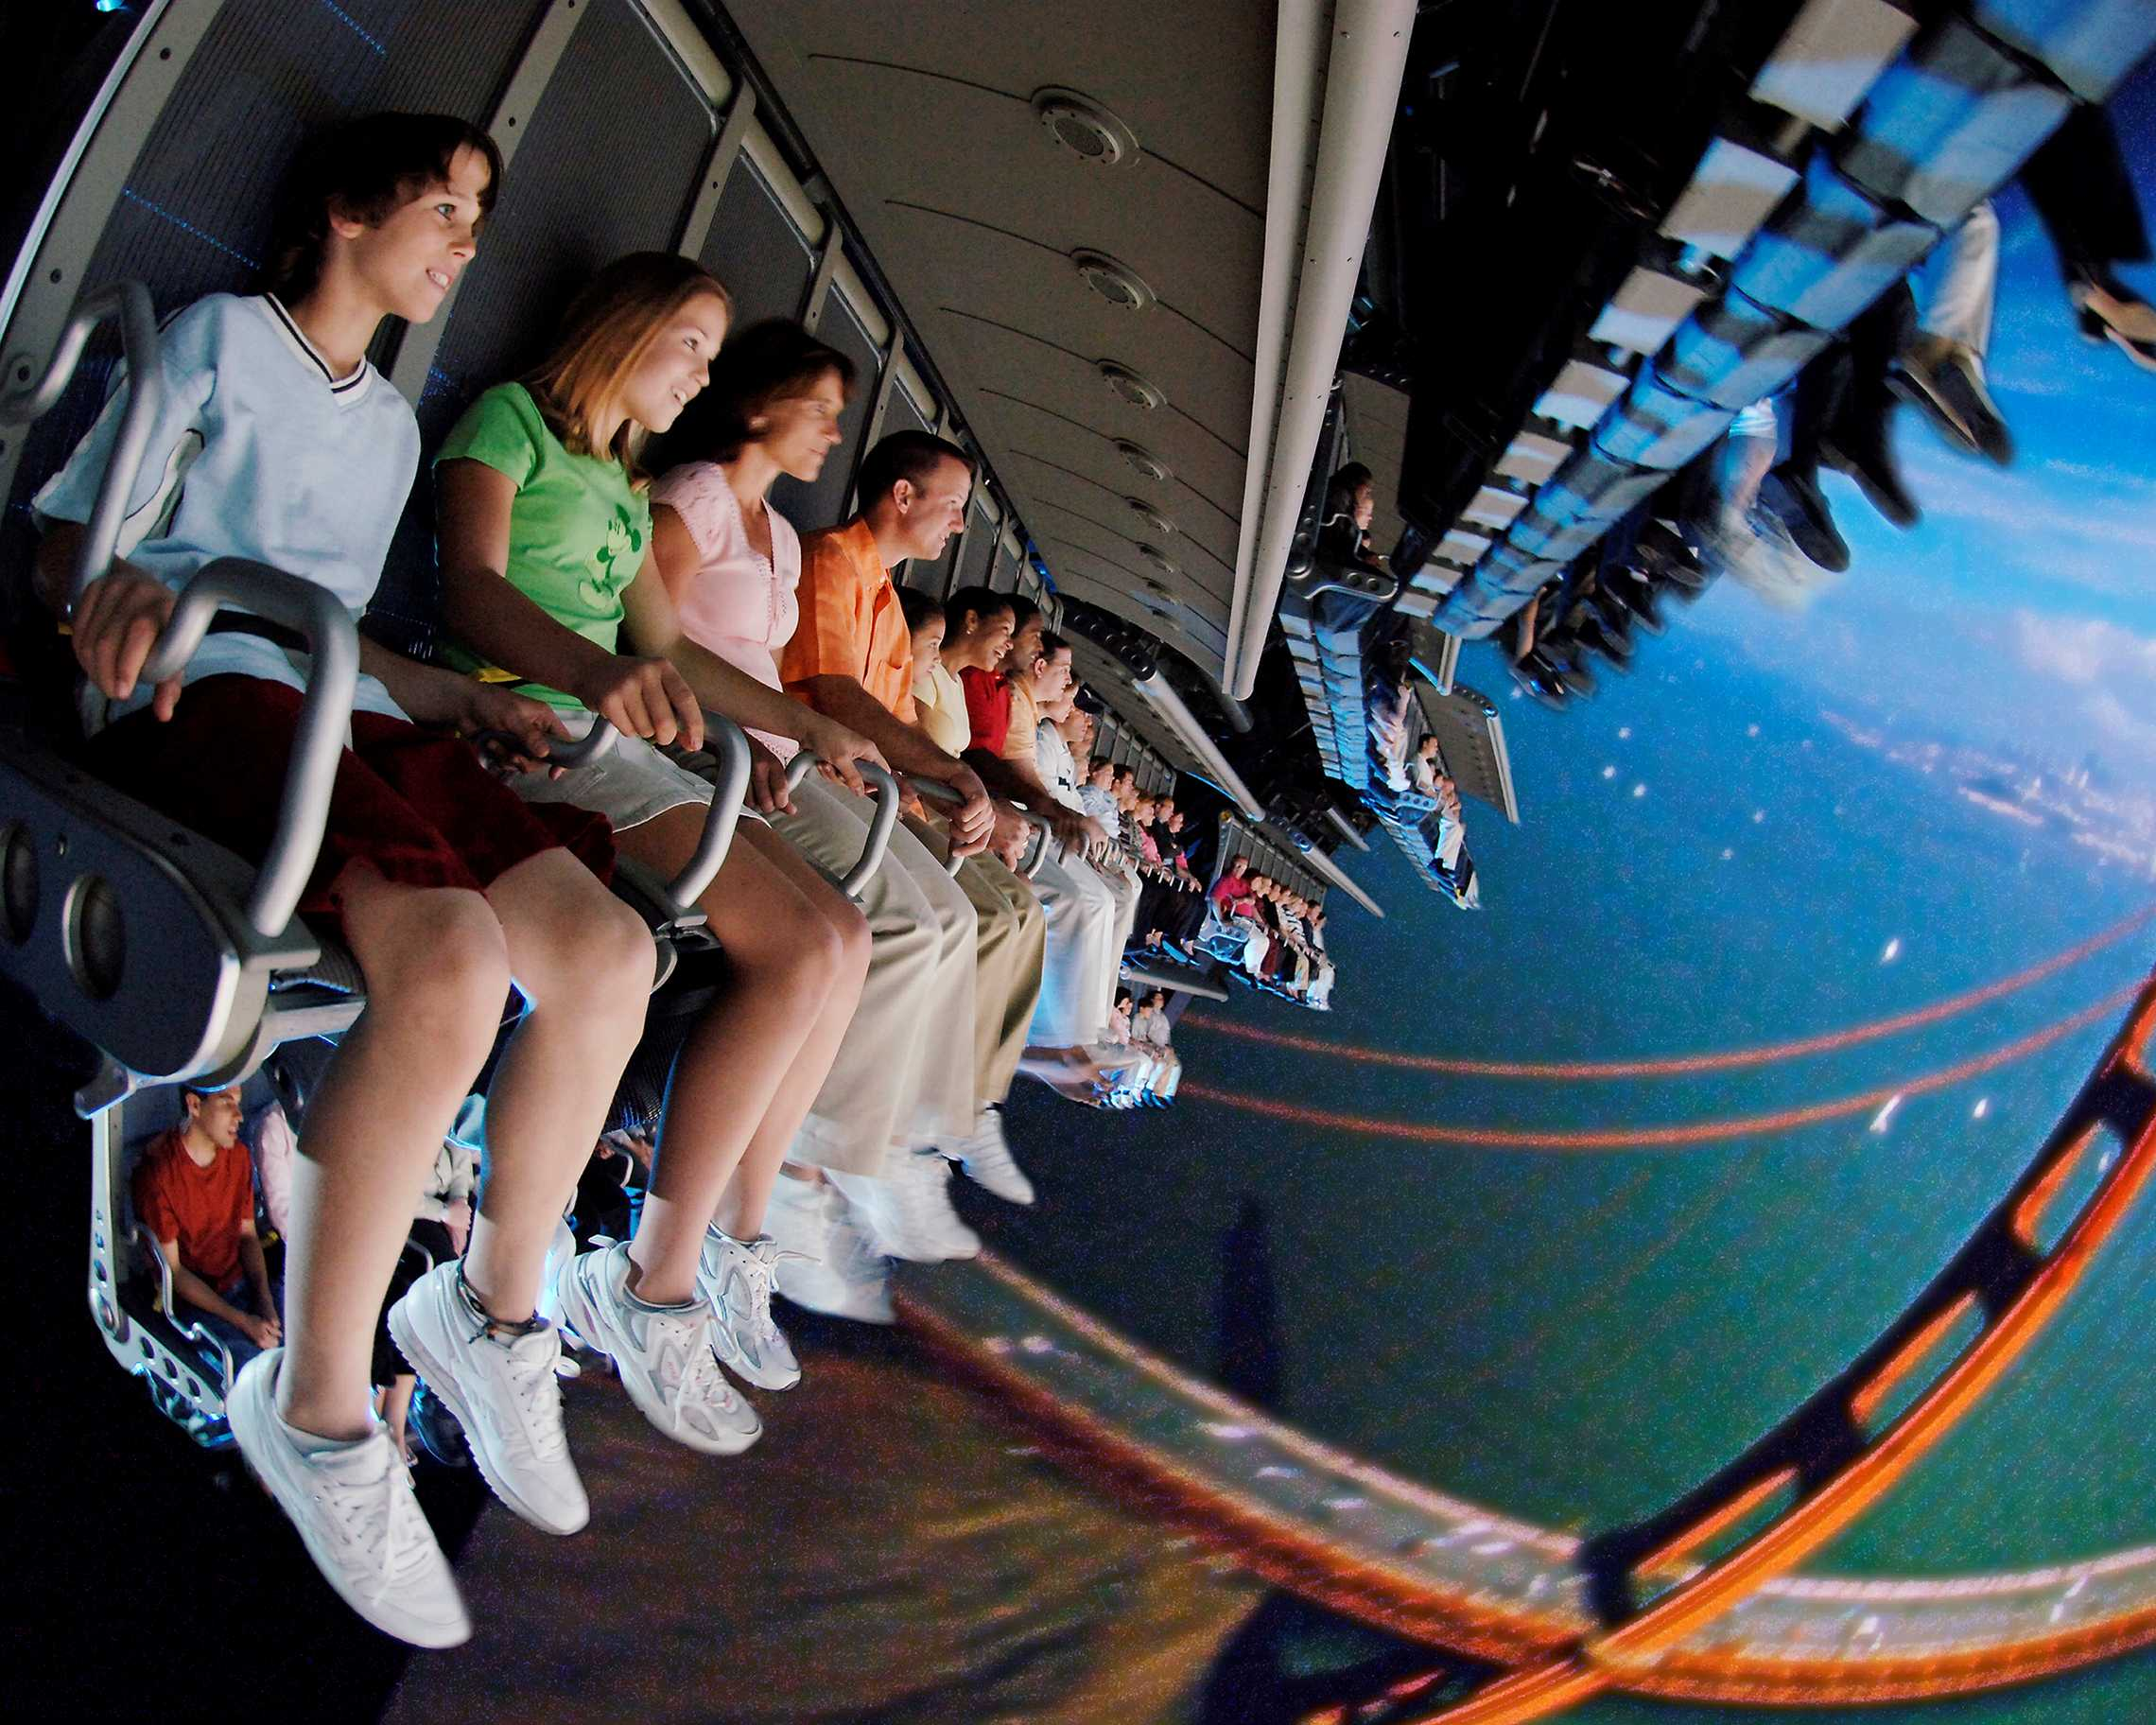 Thanks for Soarin' with us